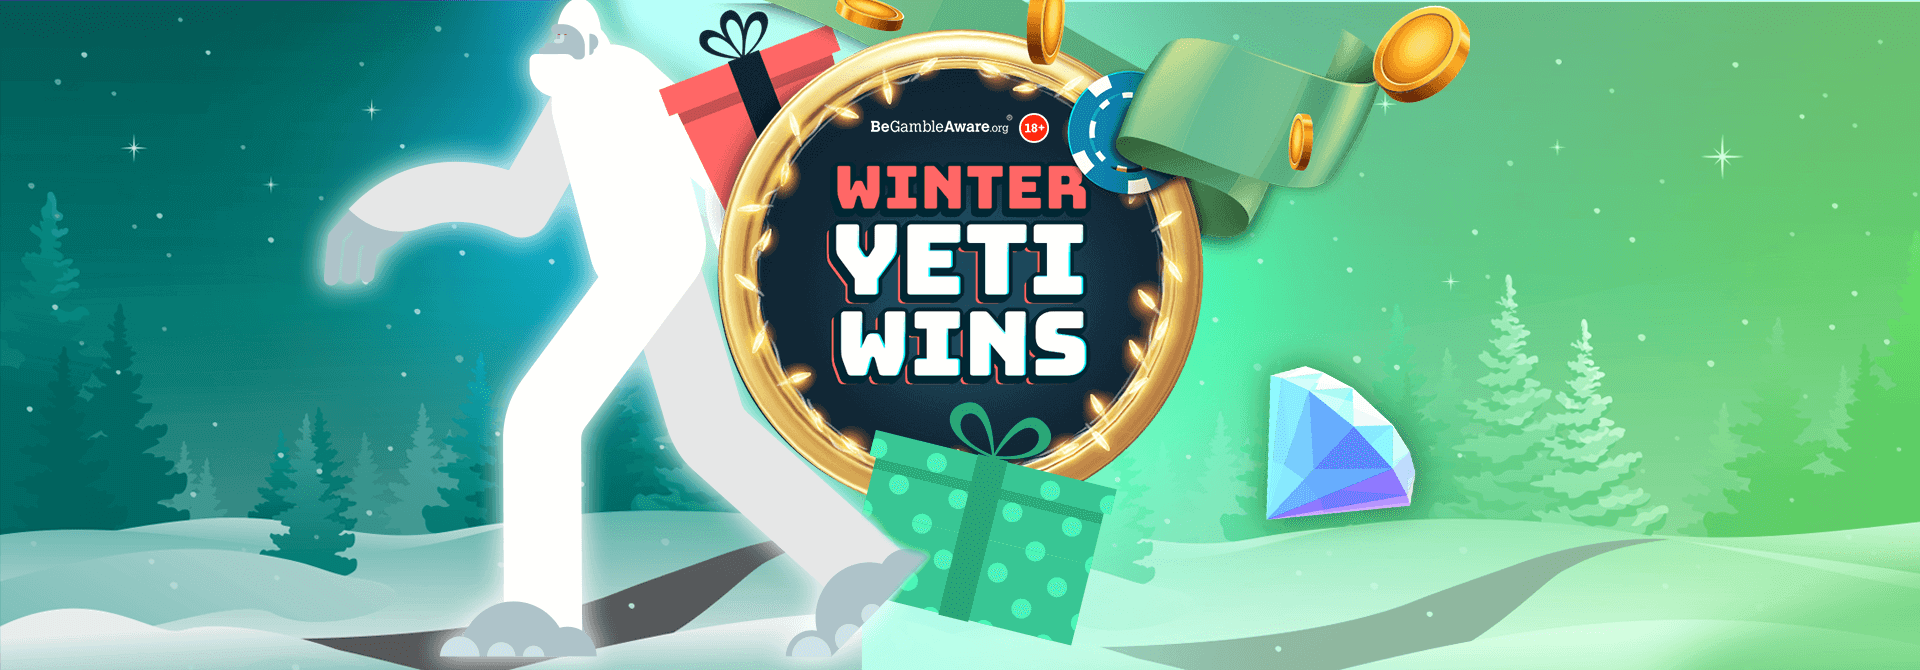 Who managed to hunt down a share of 20,000 Free Spins with our Winter Yeti Wins campaign?